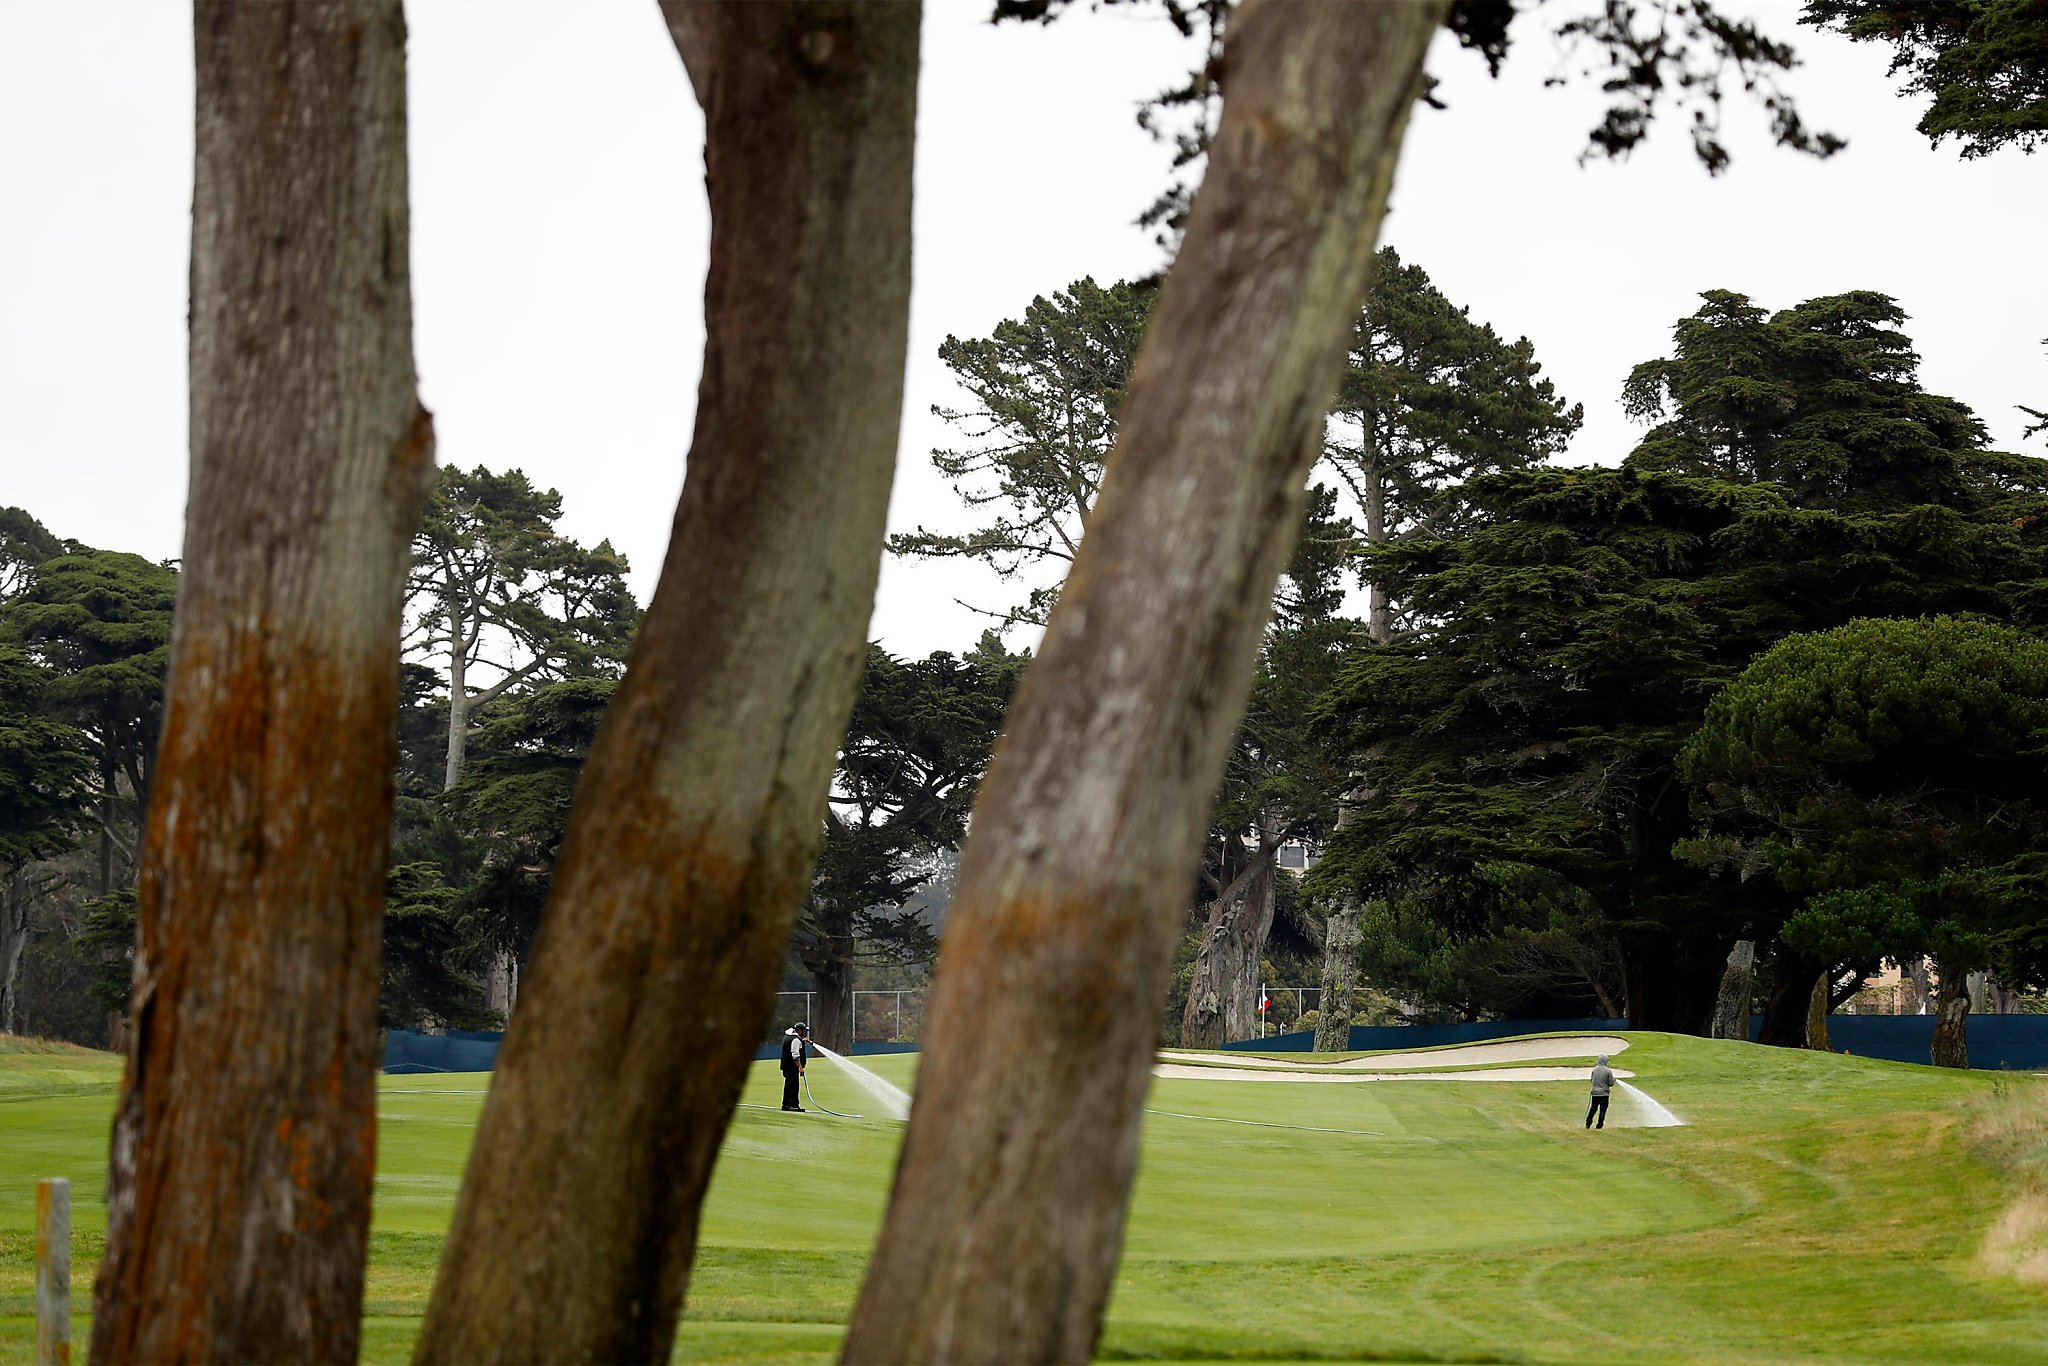 Harding Park poised to host PGA Championship - with thin fairways and thick rough